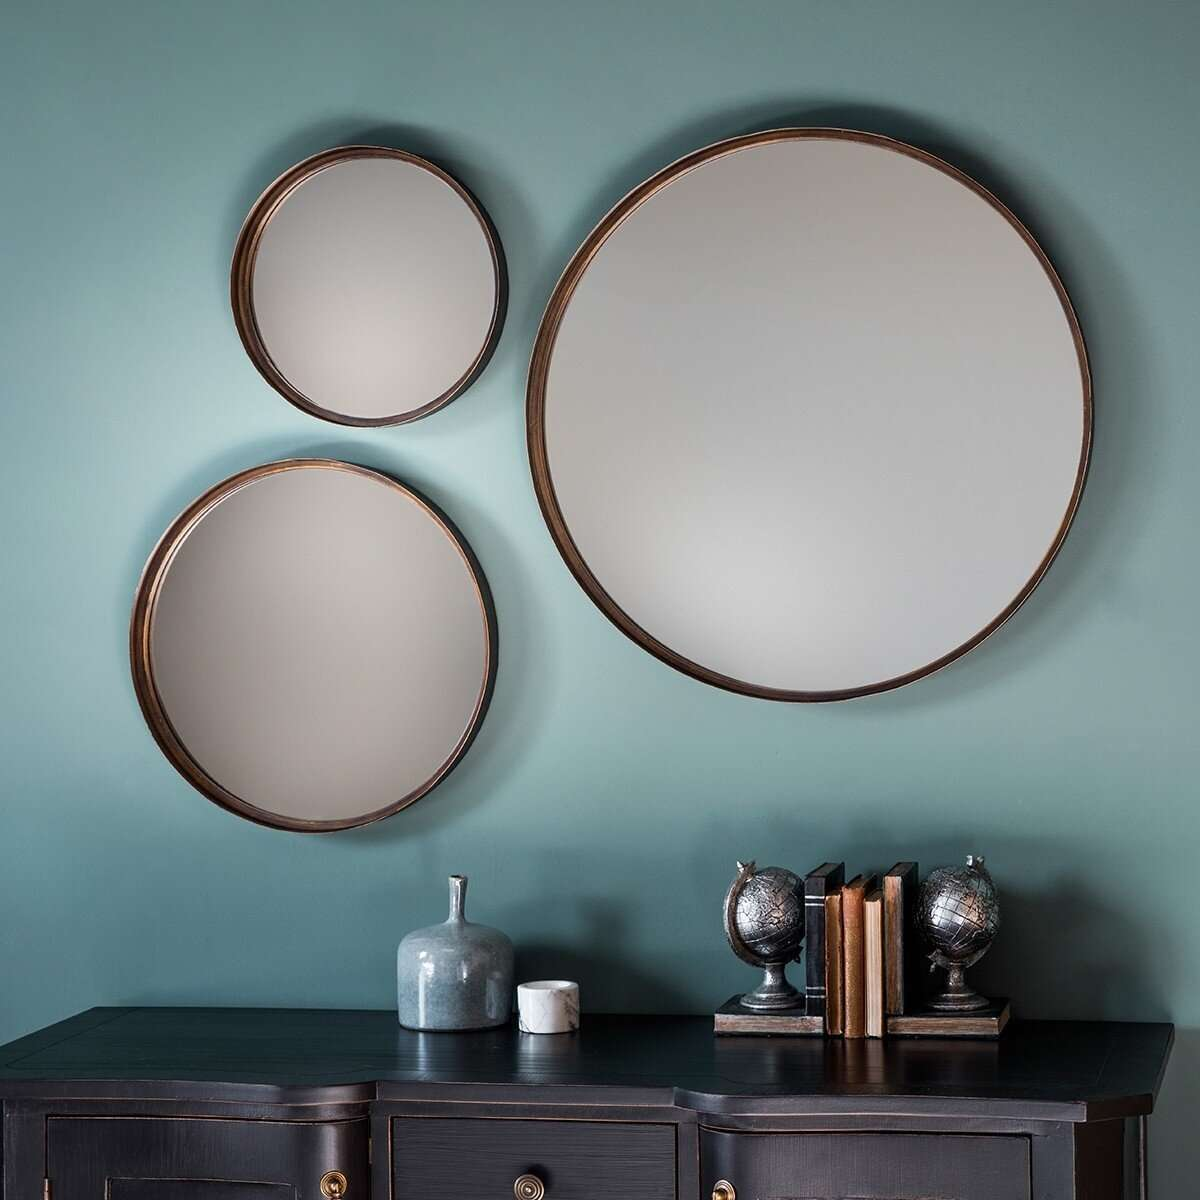 Reading Set Of 3 Round Wall Mirrors Accessories For The Home